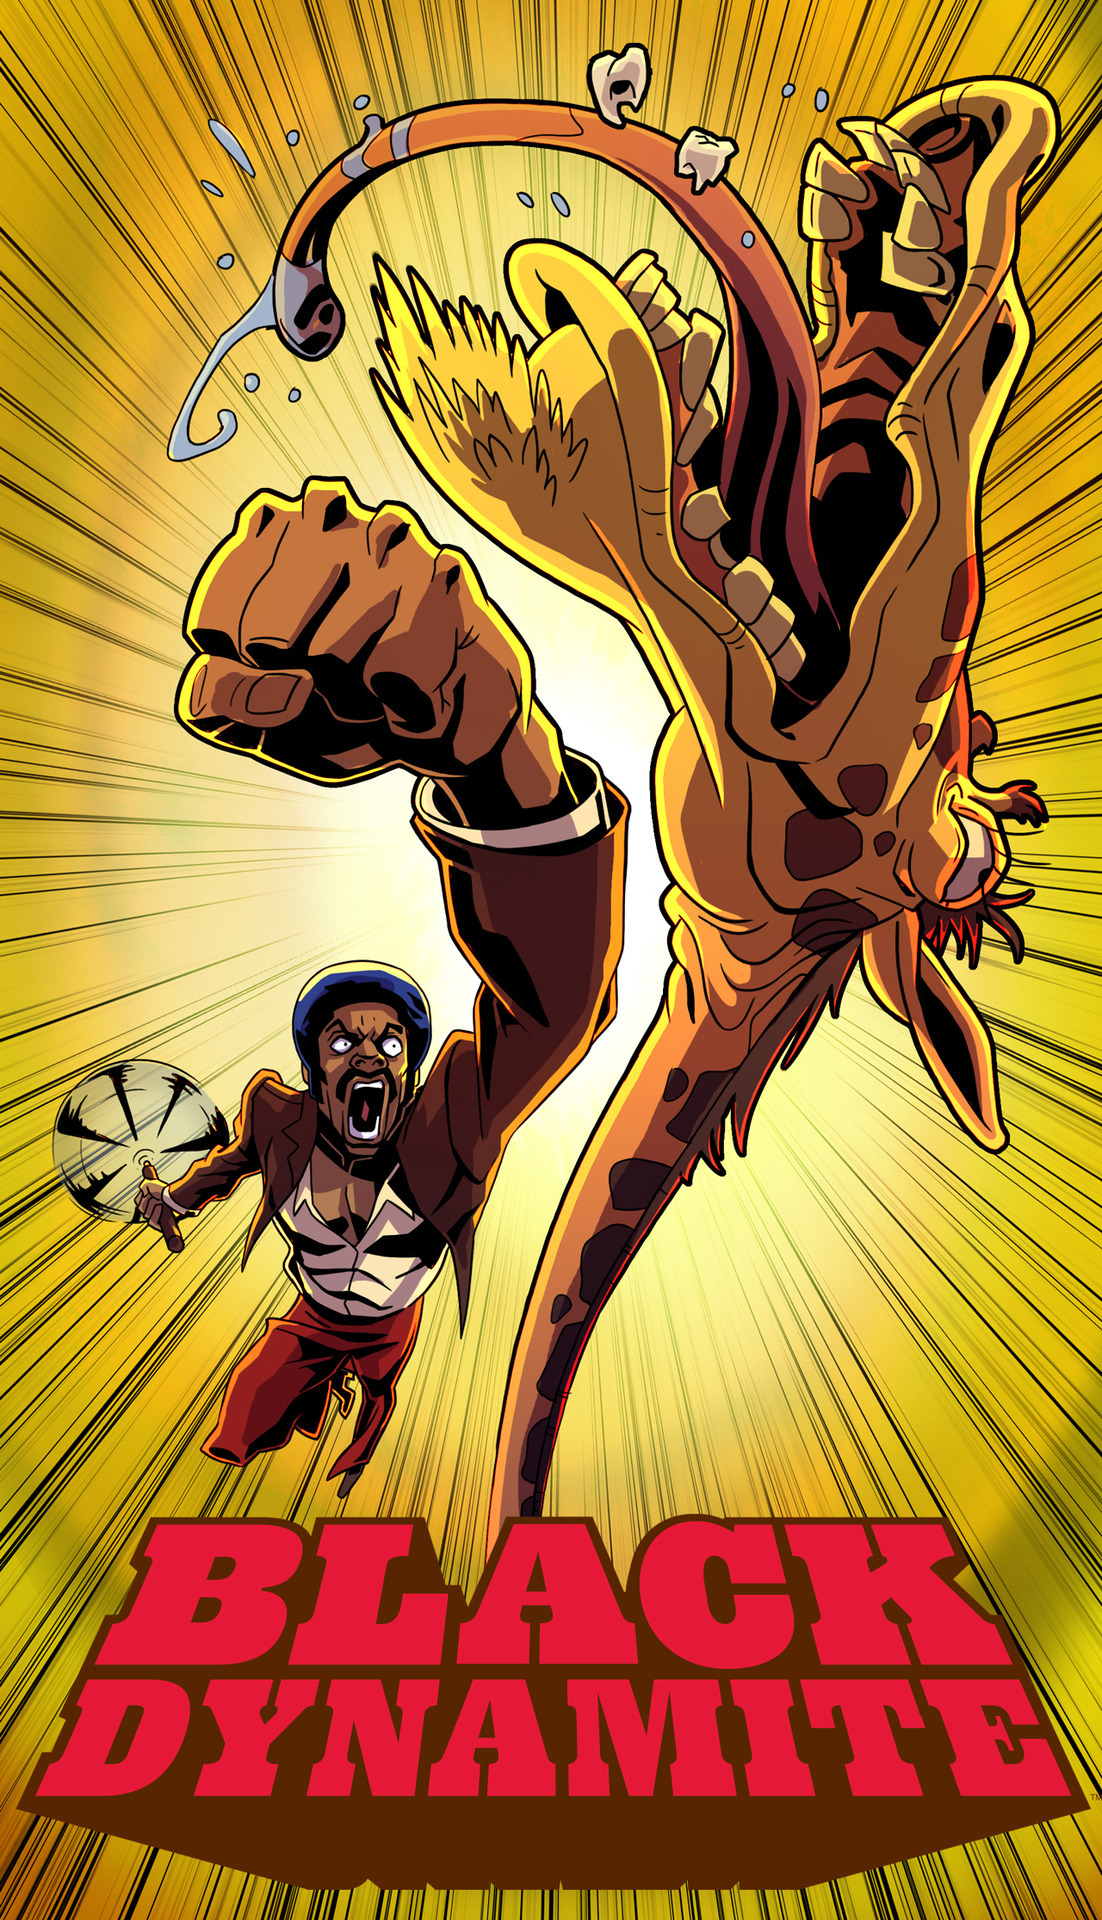 blackdynamitetv:  Rise and shine jive turkey! Black Dynamite premieres in 4 days.  how..wha…WHY is he punching a giraffe?! LoL!